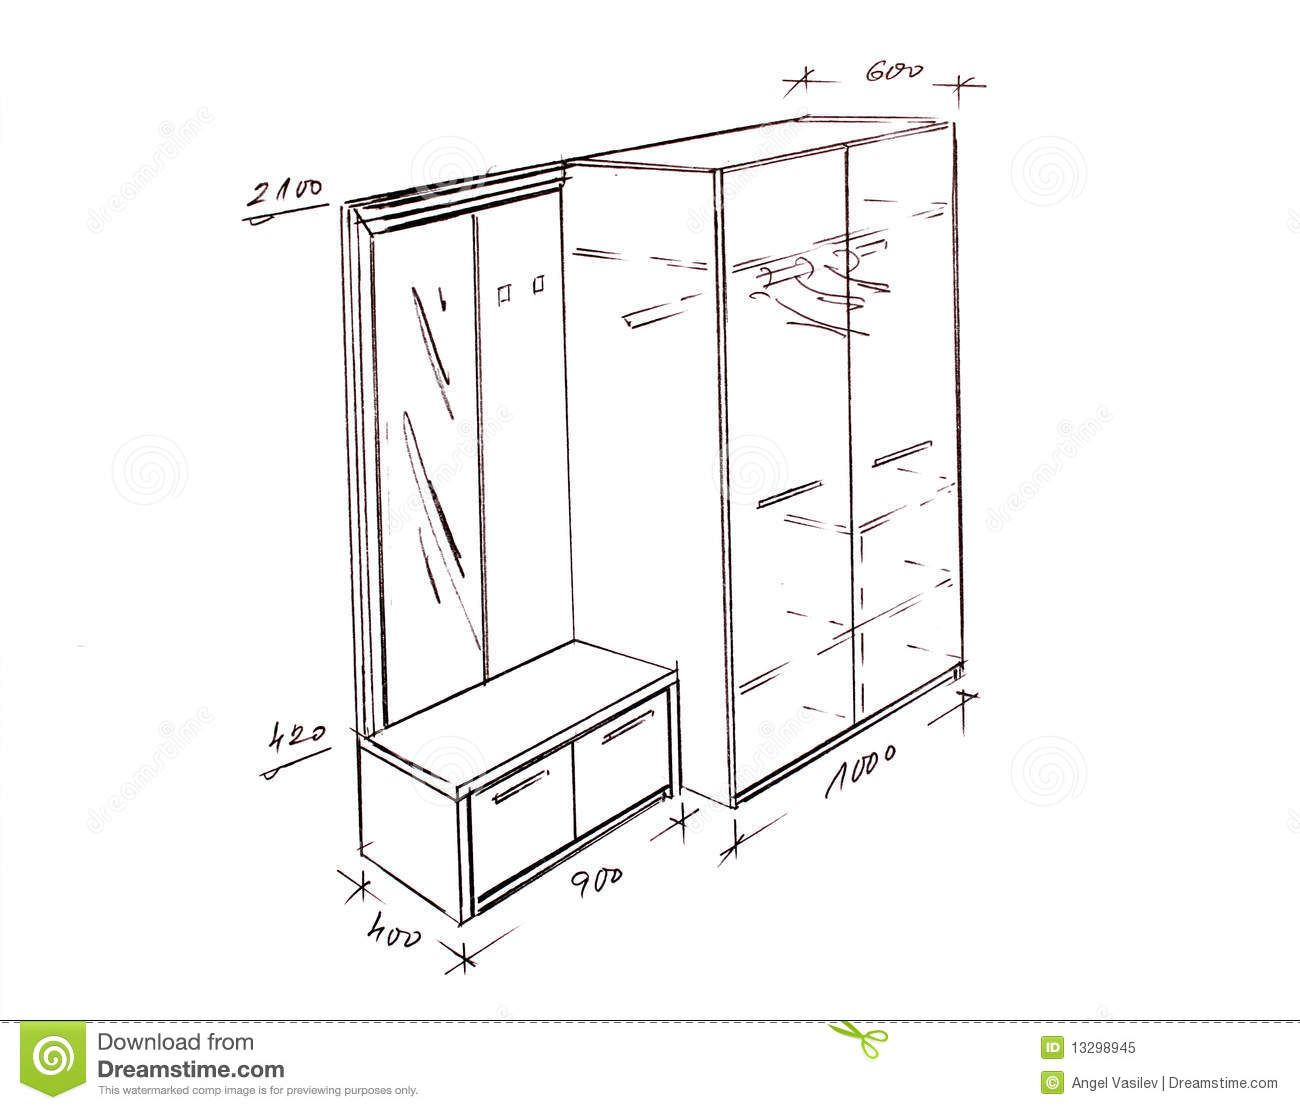 Modern Furniture Drawings furniture design drawings | furniture design drawings | pinterest